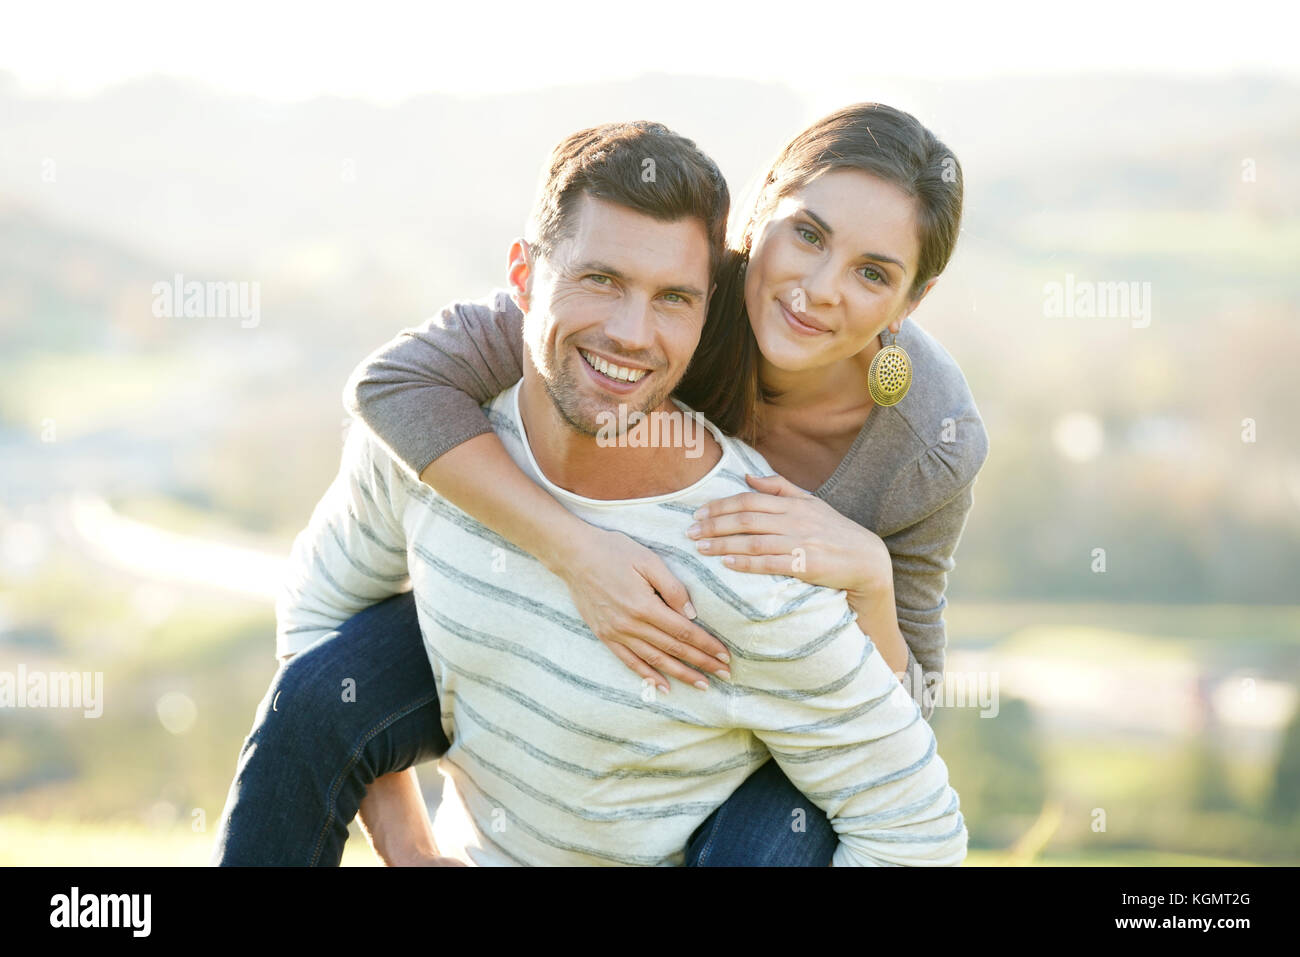 Portrait of cheerful man giving piggyback ride to girlfriend - Stock Image